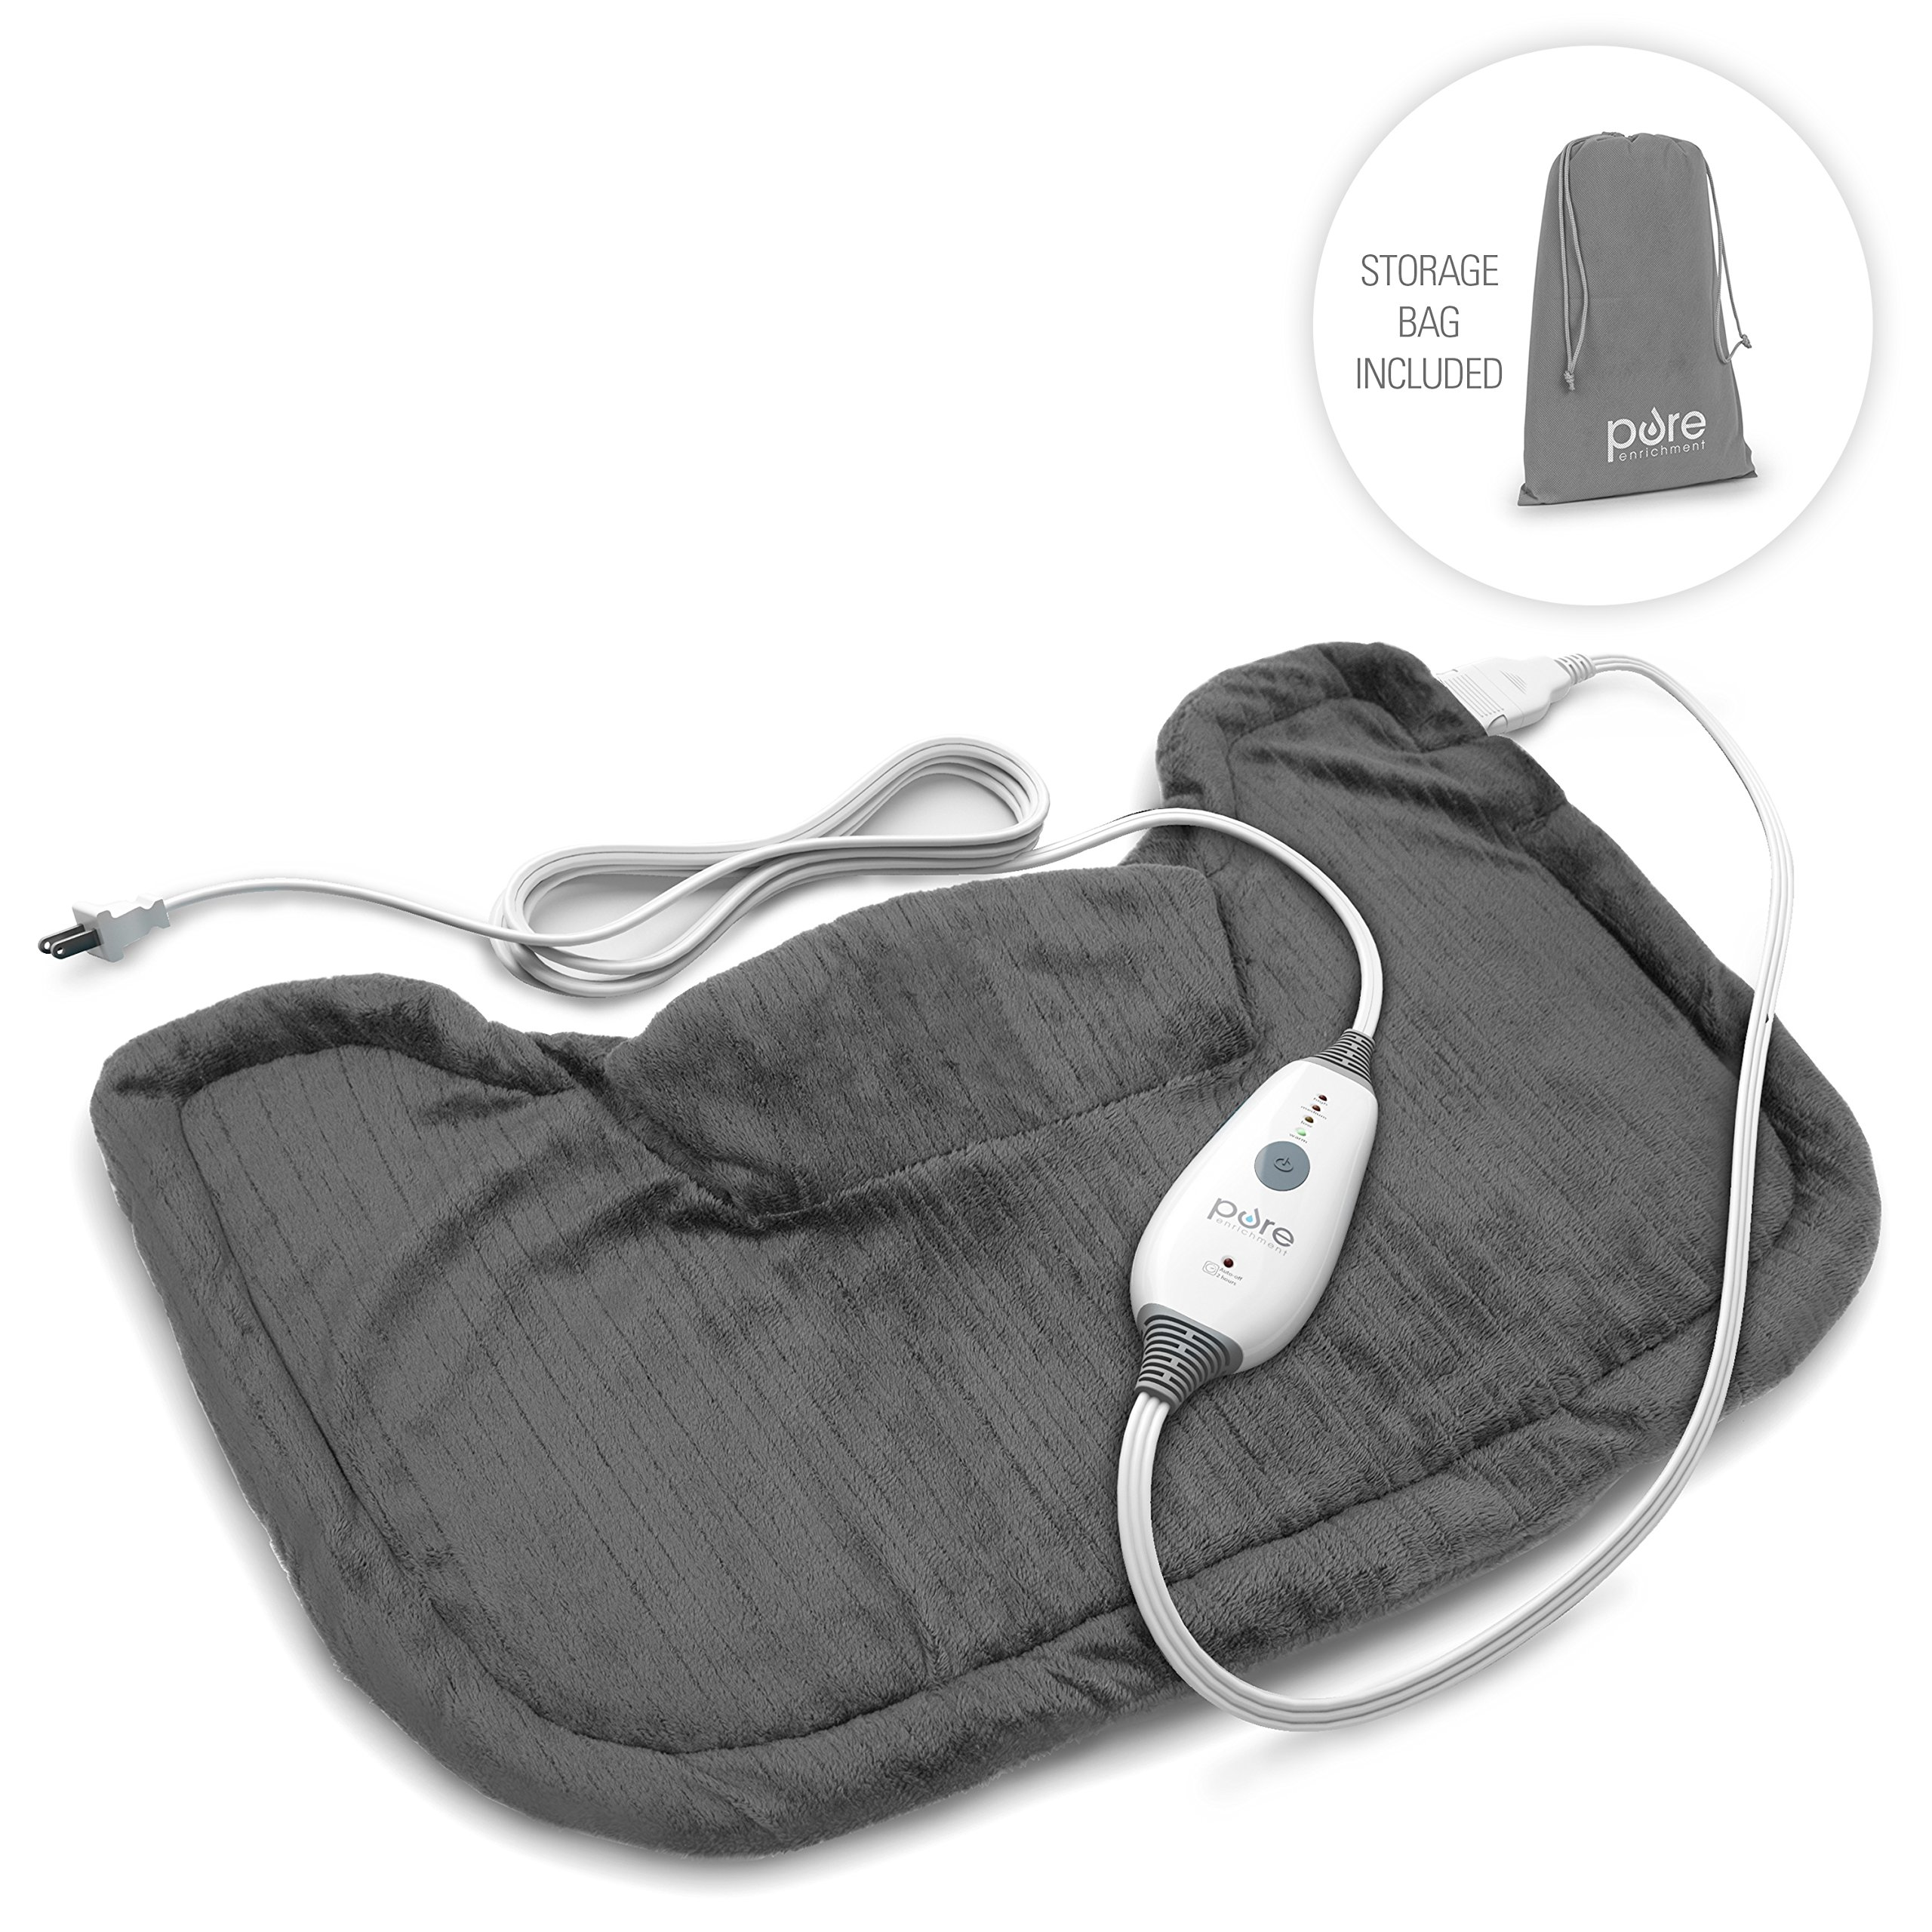 Pure Enrichment PureRelief Neck and Shoulder Heating Pad (Charcoal Gray) - Fast-Heating Technology with Magnetic Neck Closure, 4 Heat Settings, Moist Heat Therapy Option and Convenient Storage Bag by Pure Enrichment